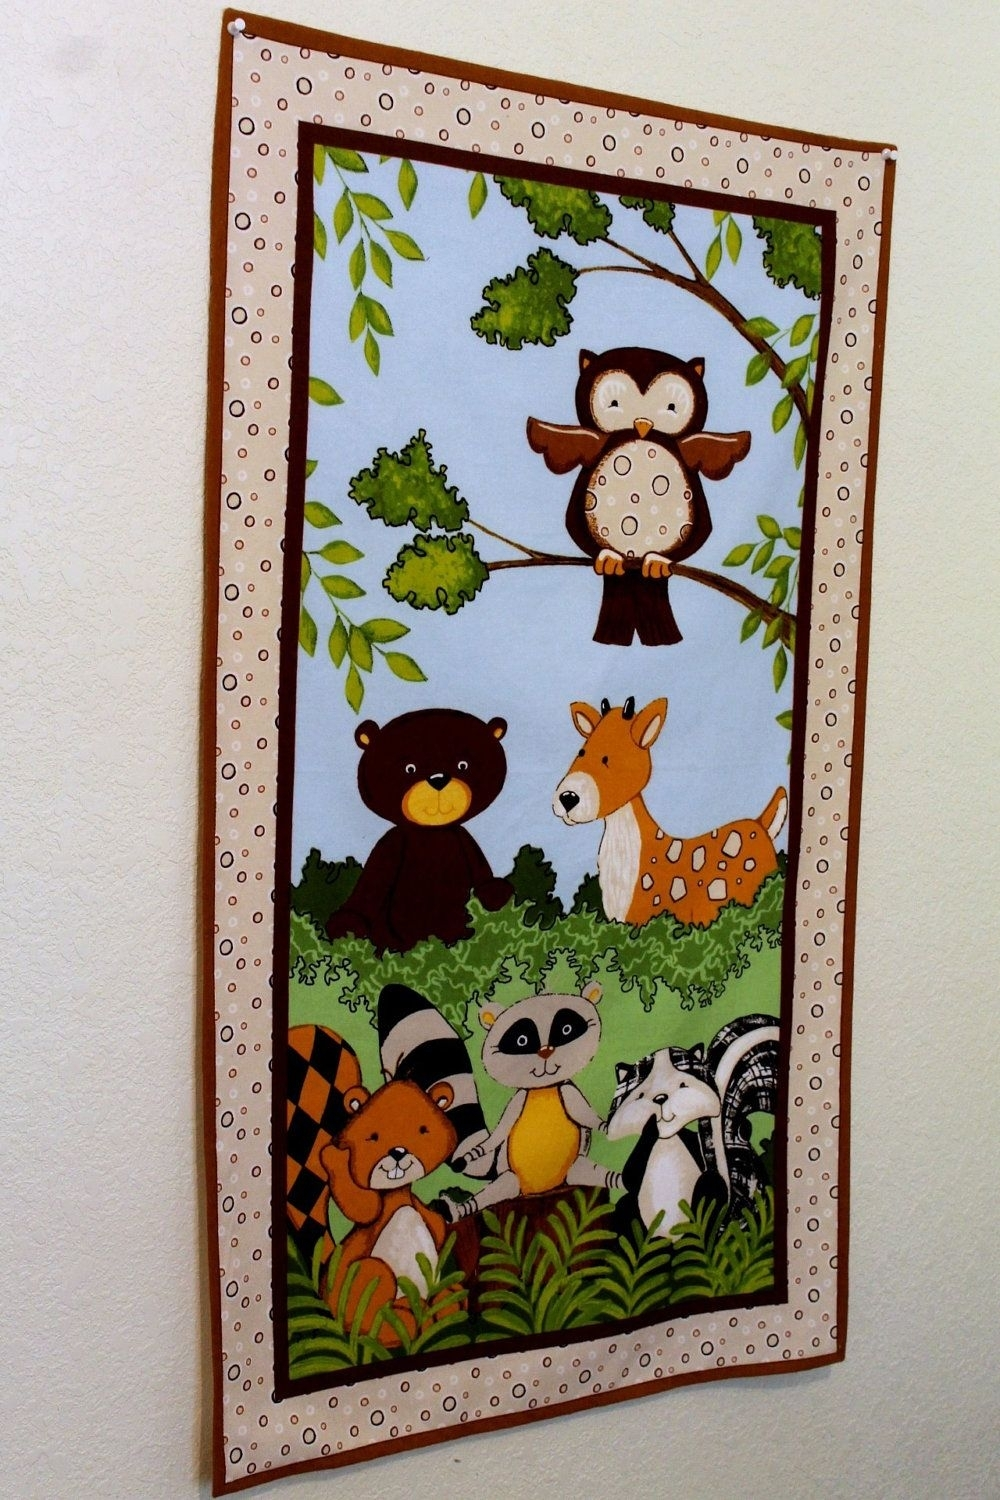 Wall Decor Woodland Animal Forest Creatures Flannel Fabric Panel Within Current Fabric Wall Art For Nursery (View 13 of 15)